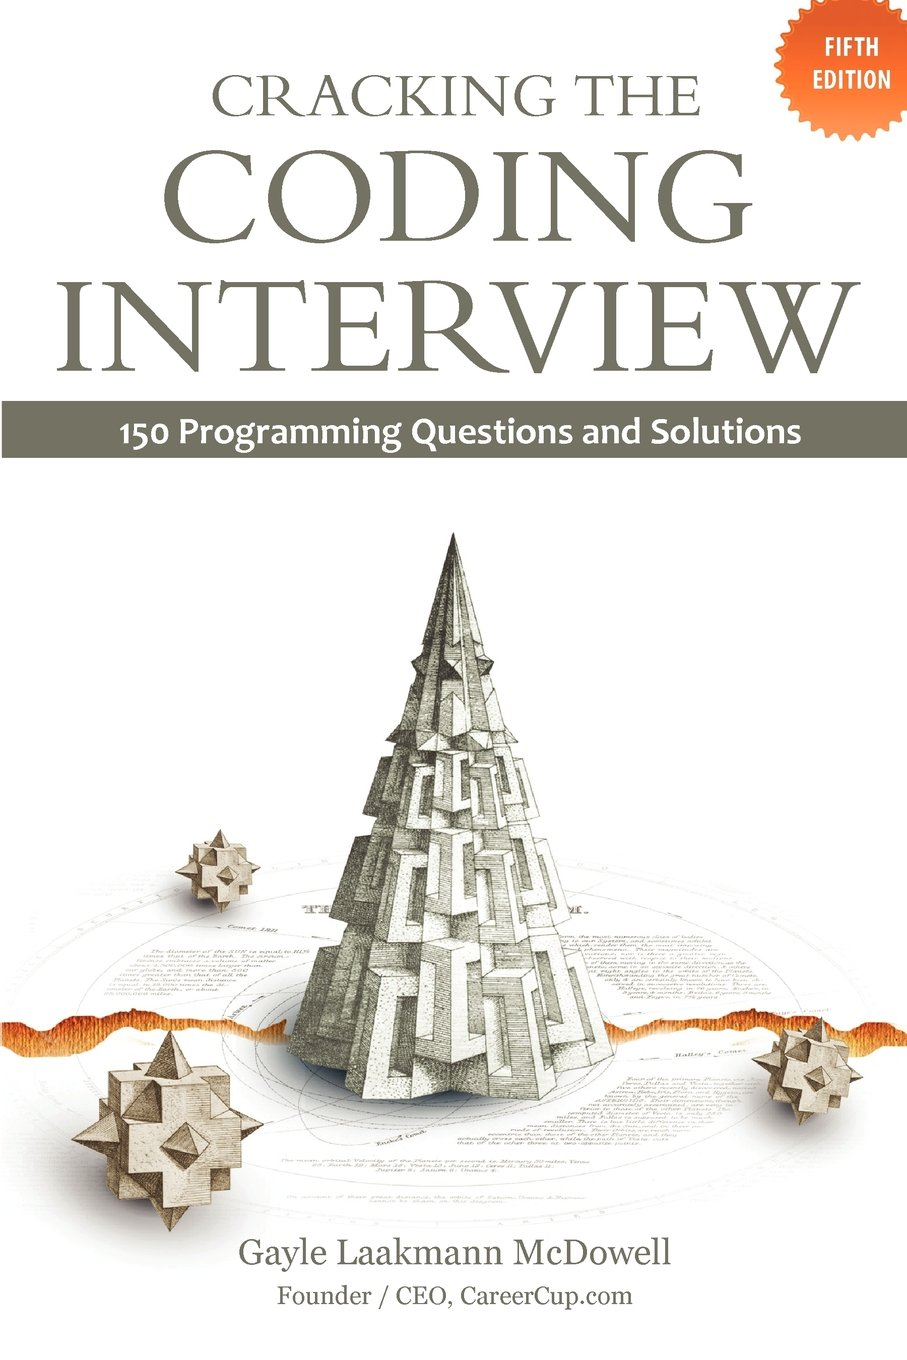 Cracking the Coding Interview: 150 Programming Questions and Solutions